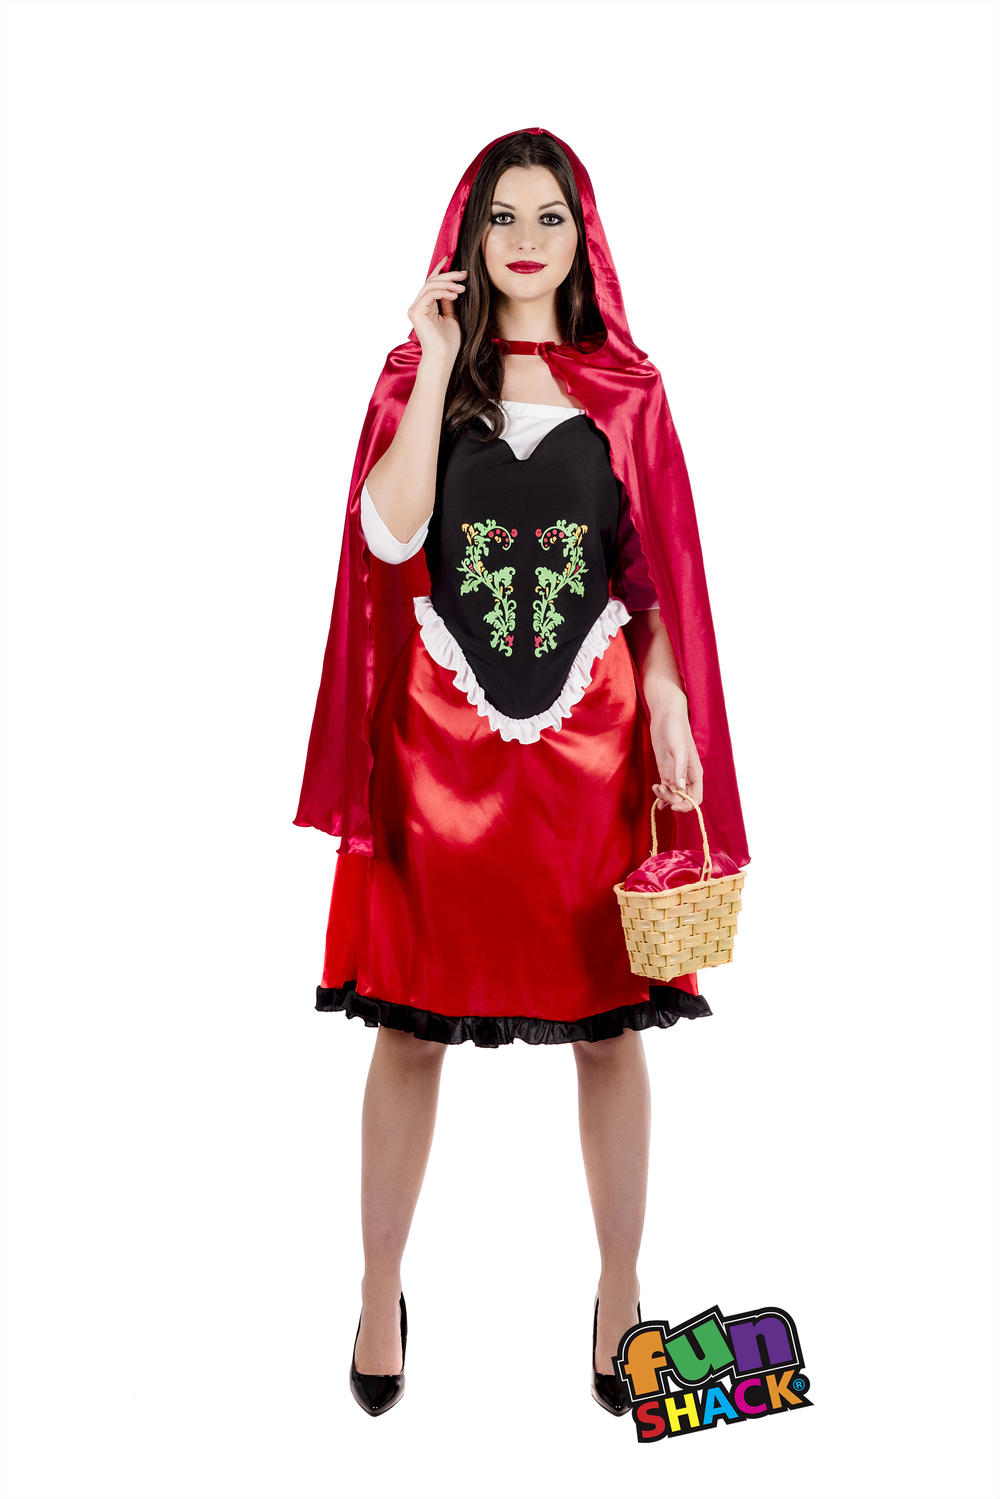 Red Riding Hood Ladies Fancy Dress Fairytale Story Book Day Adult Costume Outfit